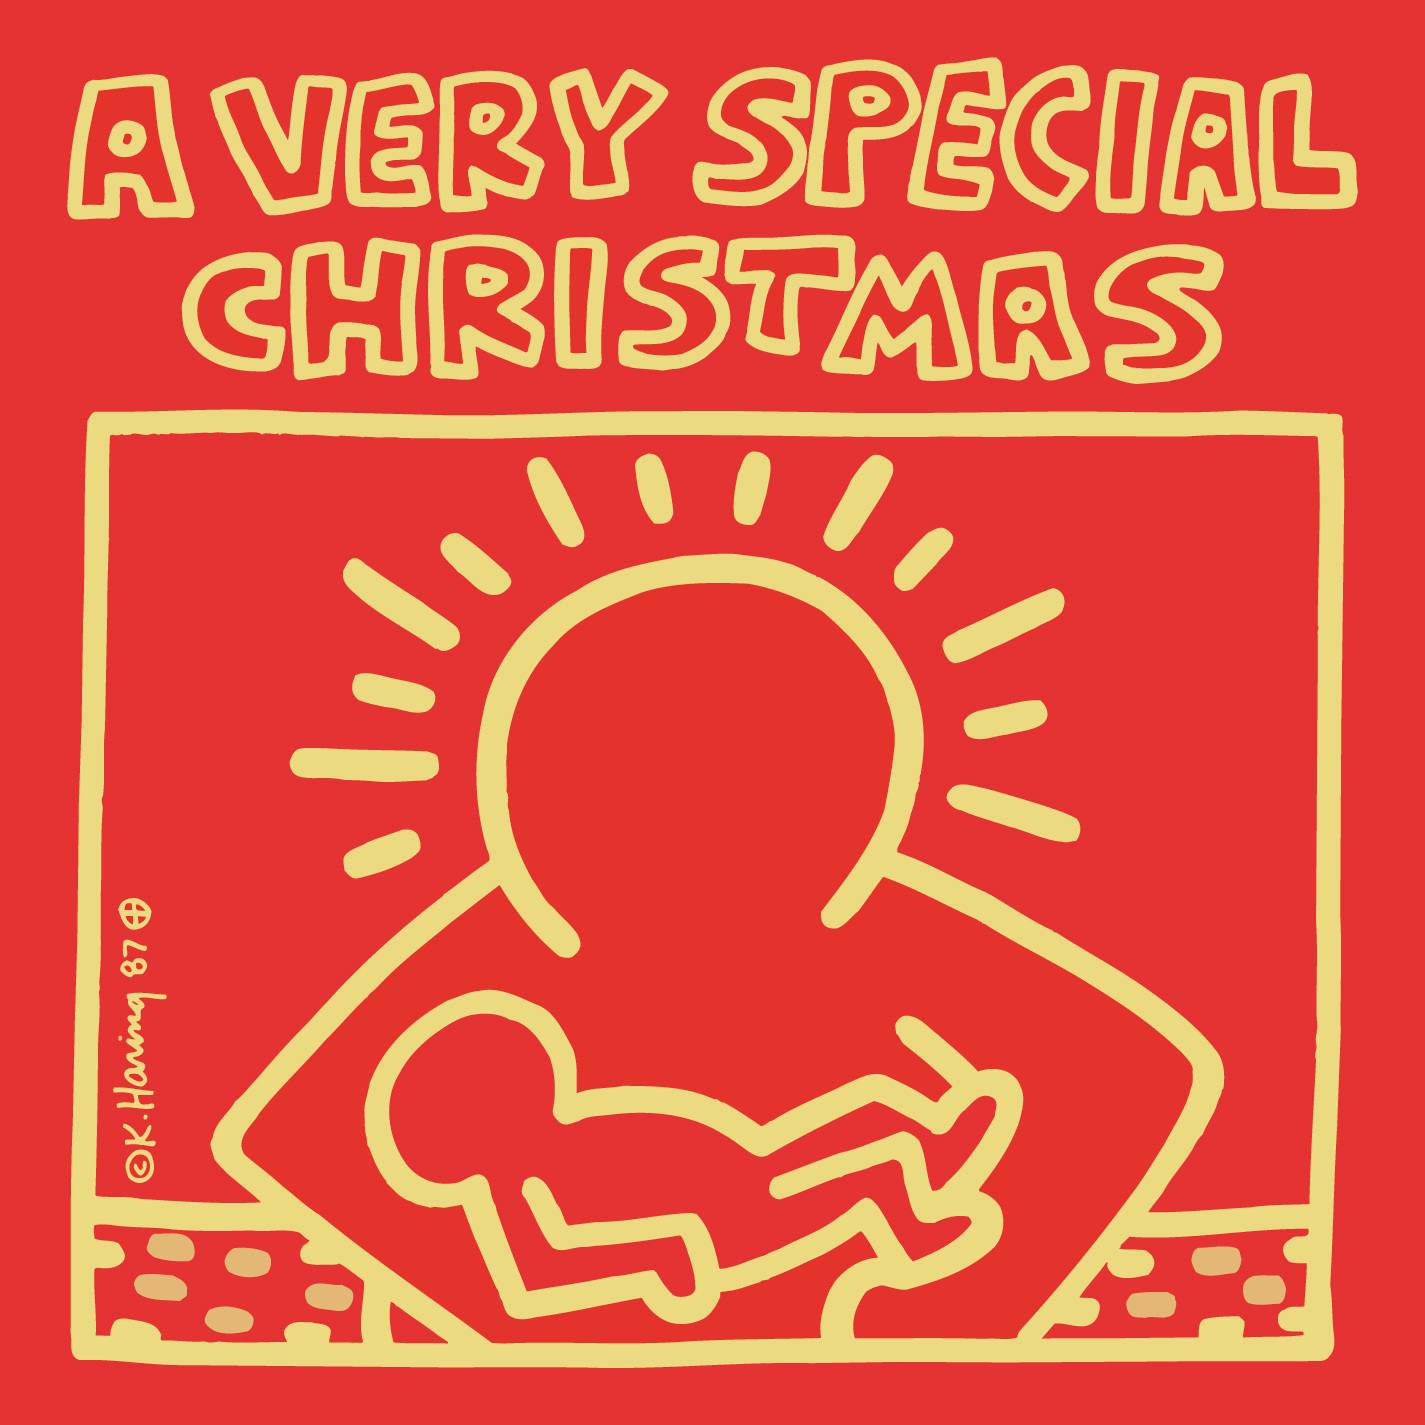 christmas baby please come home u2 1987 - 12 Redneck Days Of Christmas Lyrics